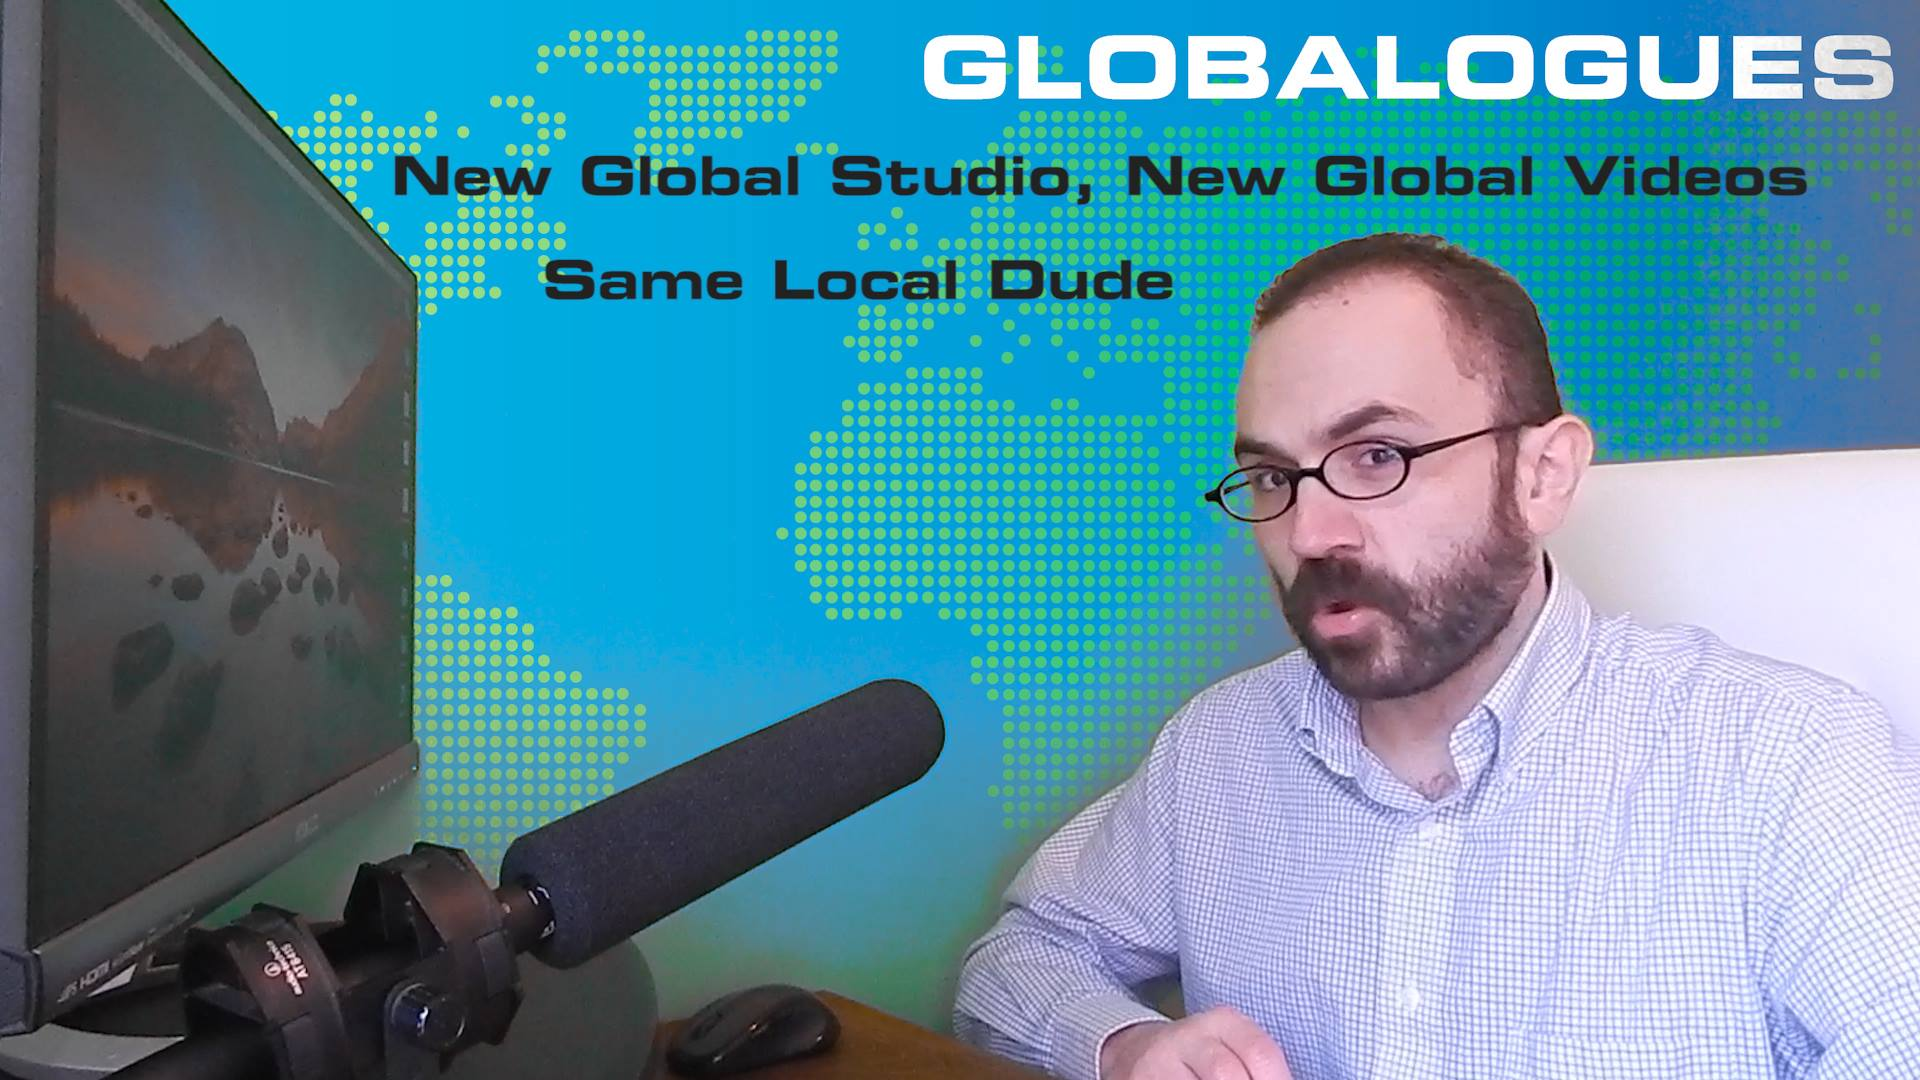 globalogues feature image